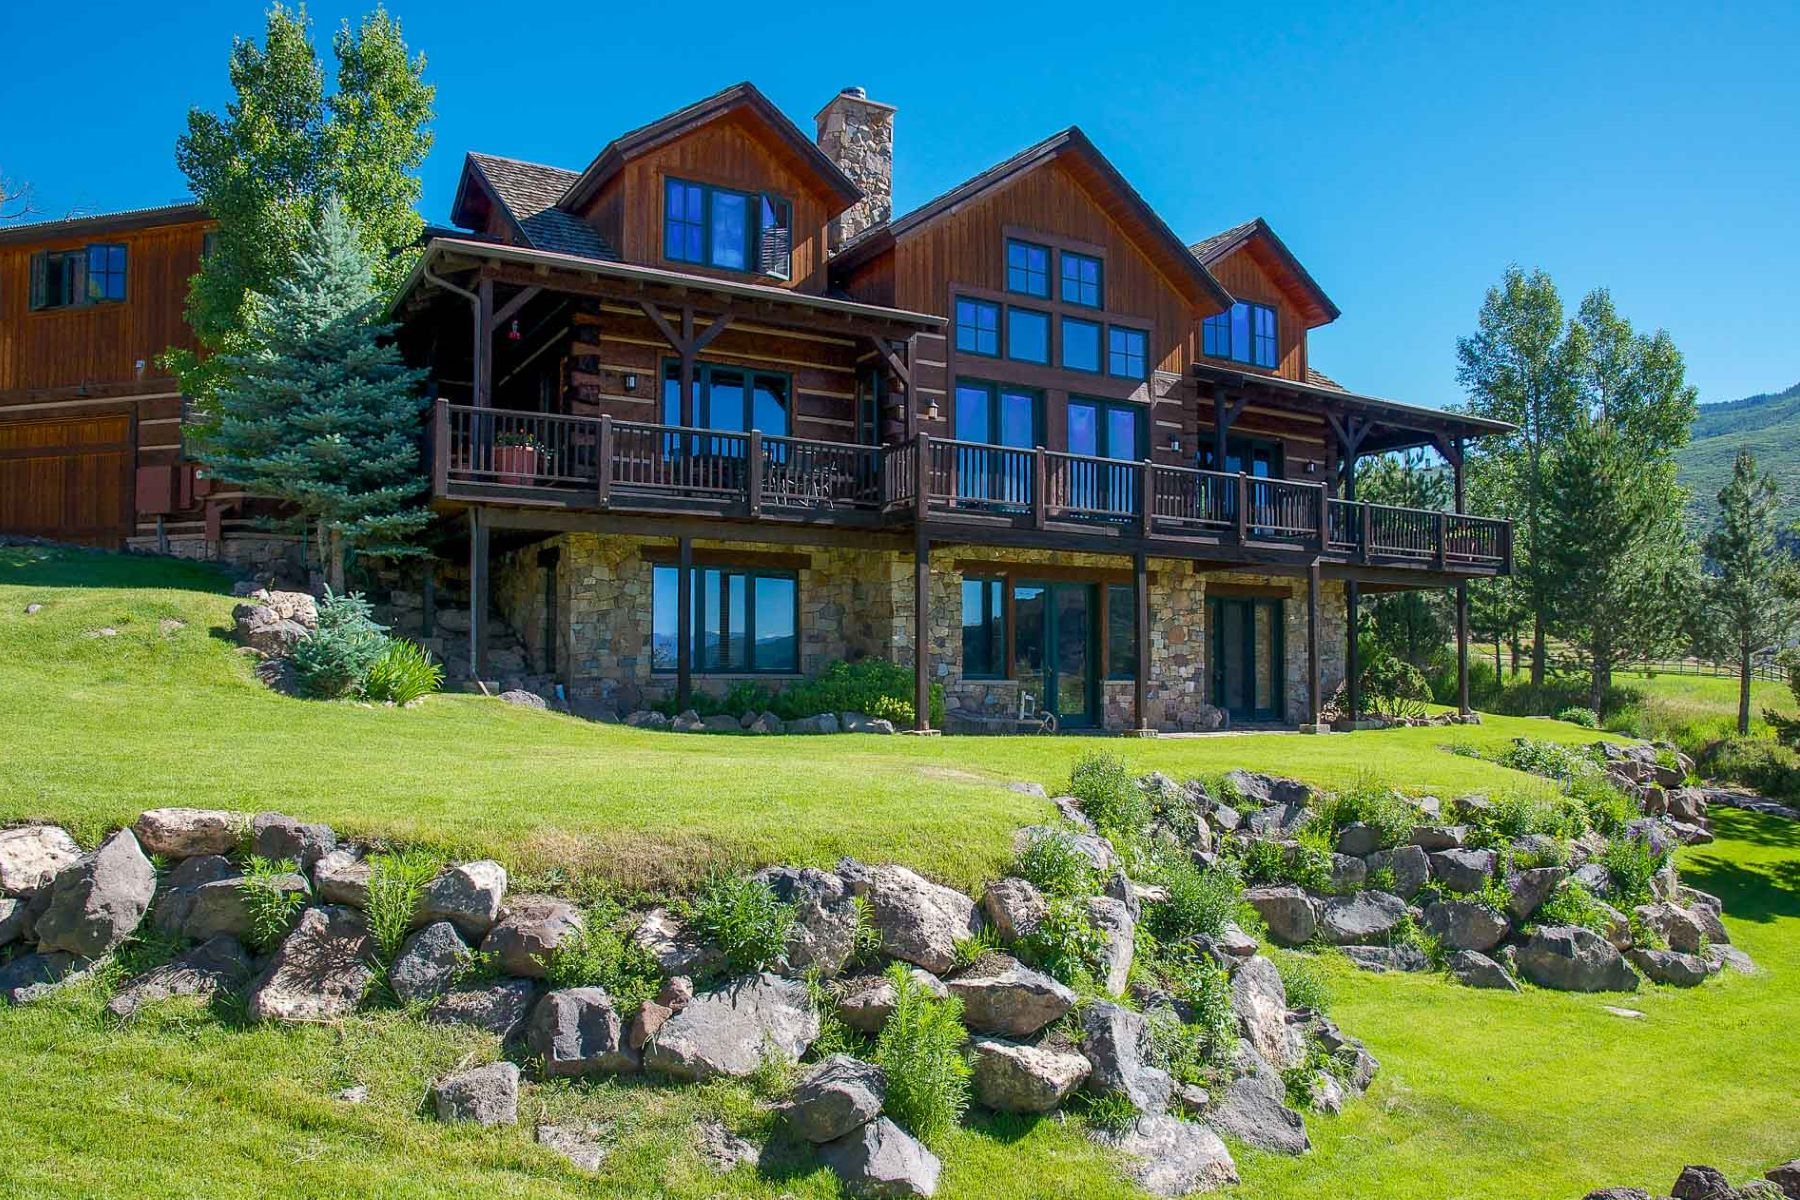 Casa Unifamiliar por un Venta en Log Home with Majestic Views Carbondale, Colorado 81623 Estados Unidos